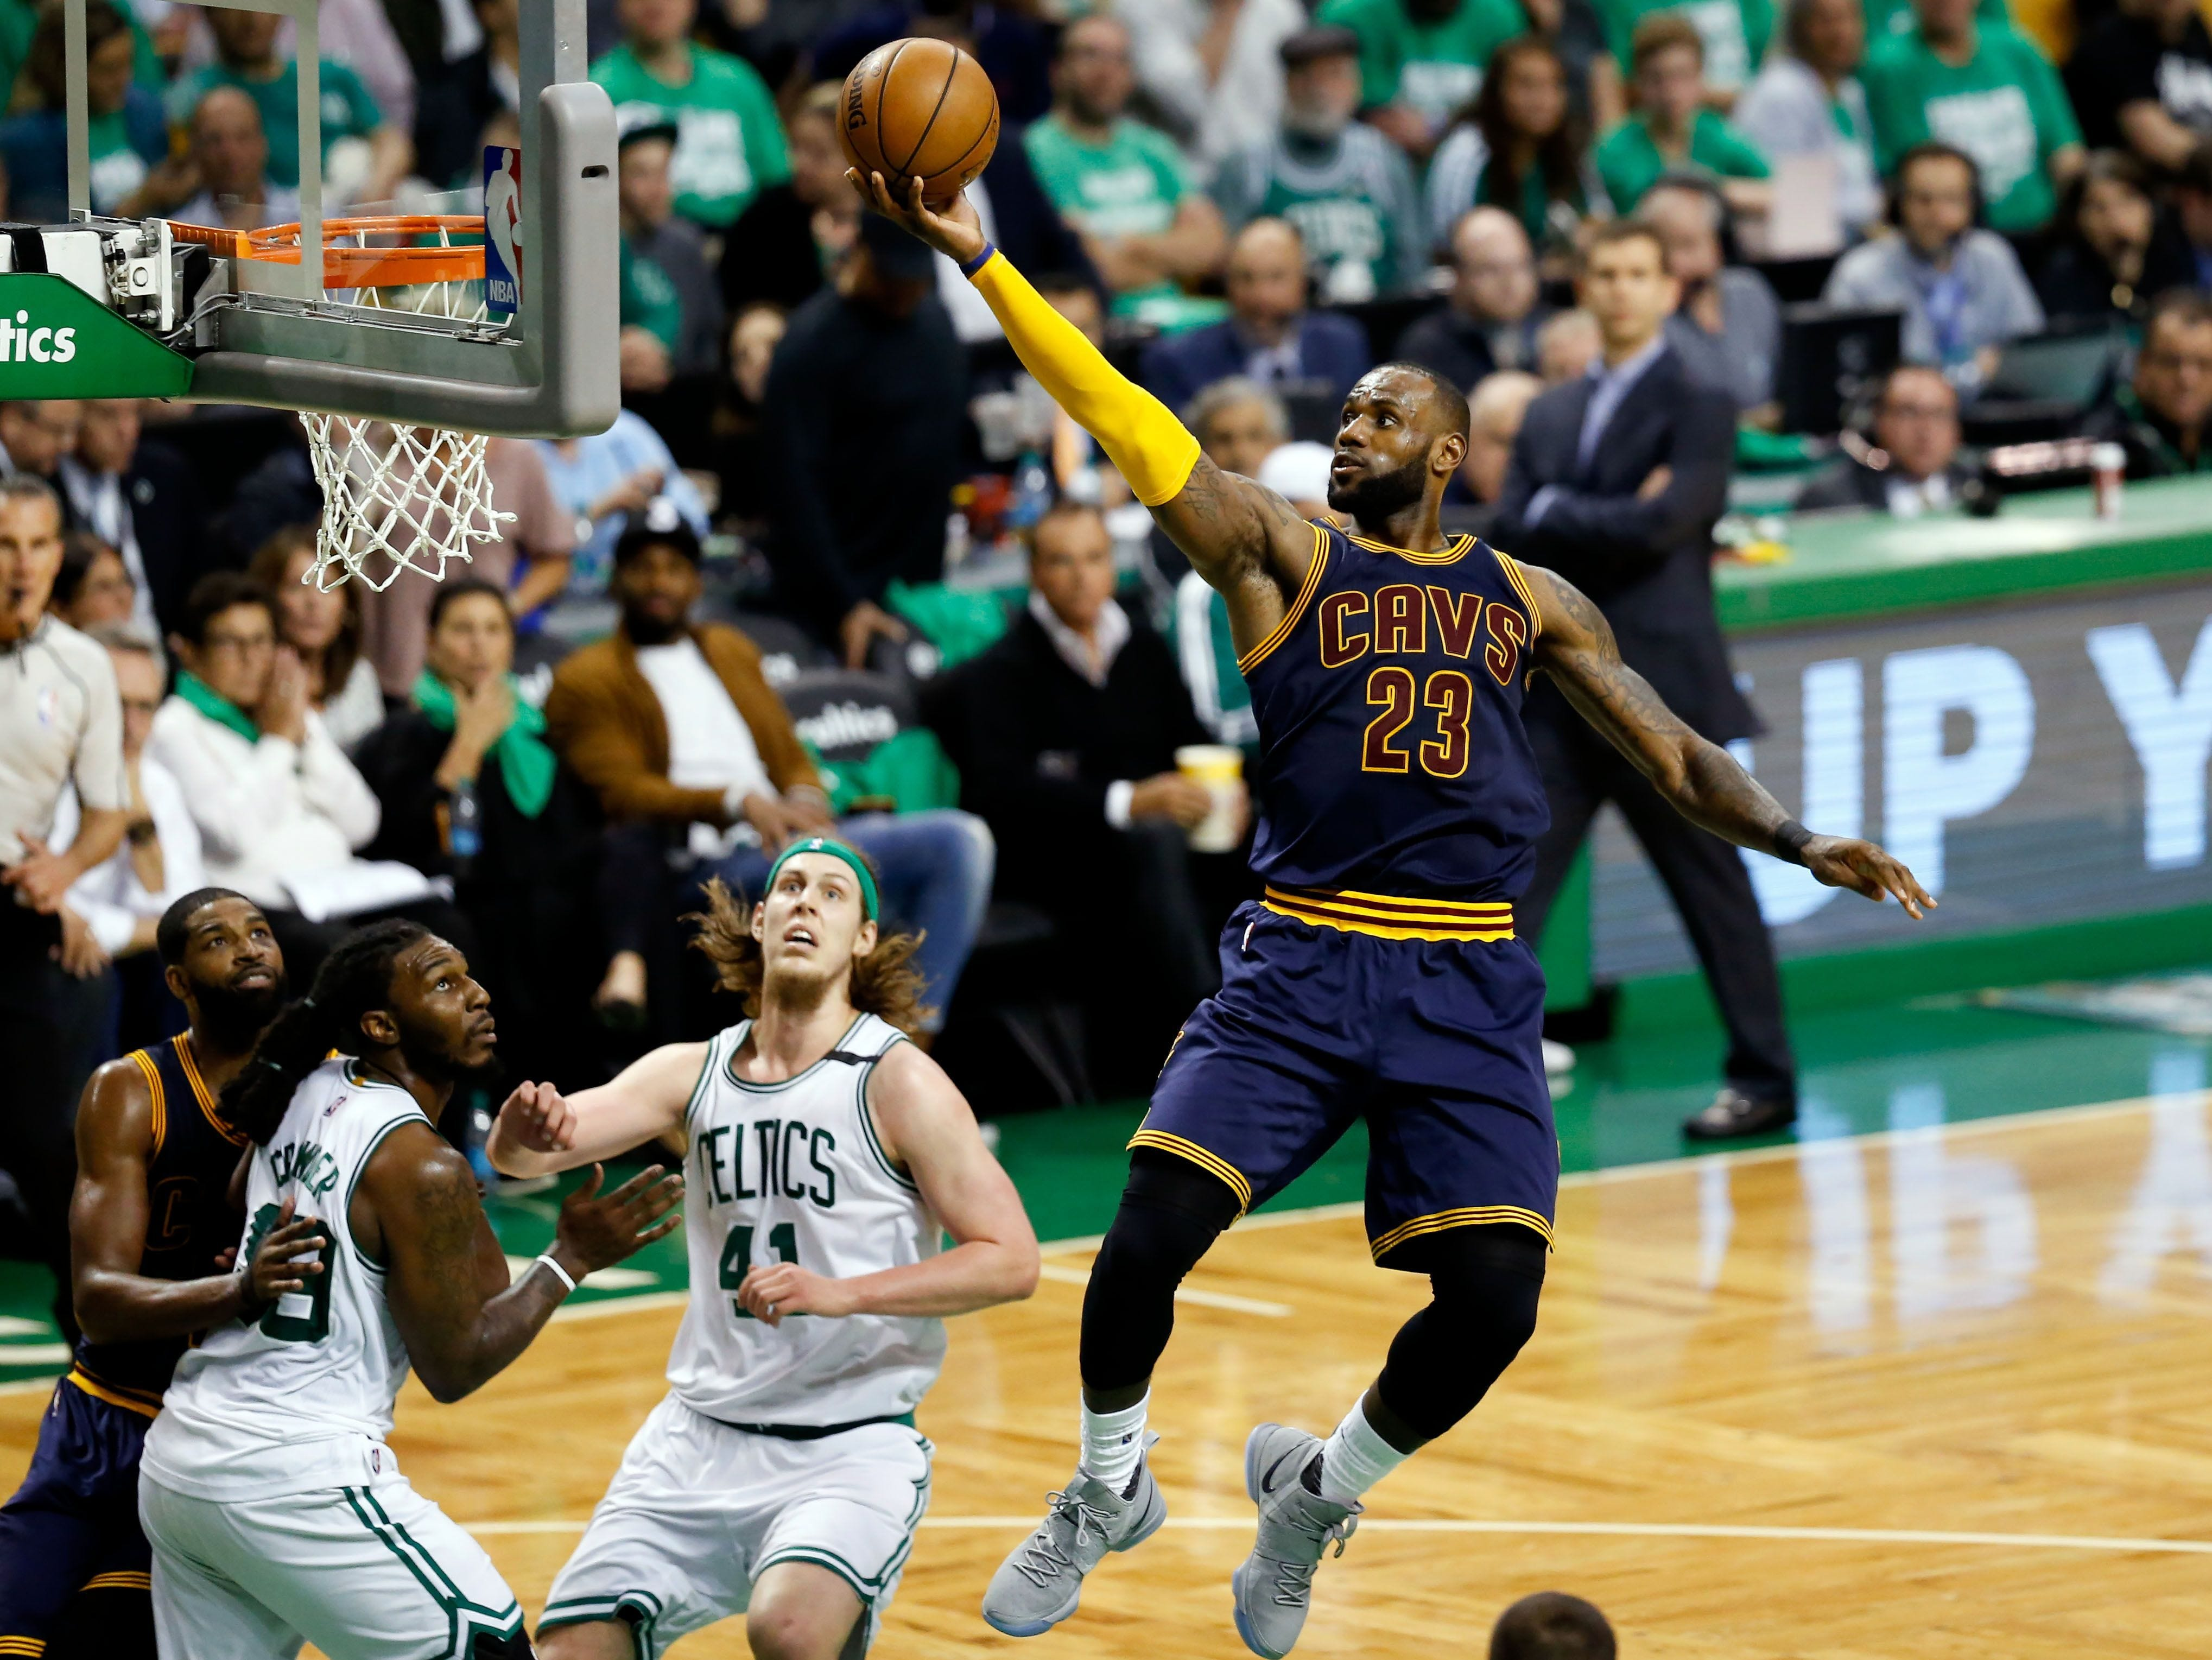 636313485706984523-USP-NBA-PLAYOFFS-CLEVELAND-CAVALIERS-AT-BOSTON-CE-91209554 Cavaliers roll past Celtics, advance to NBA Finals showdown with Warriors